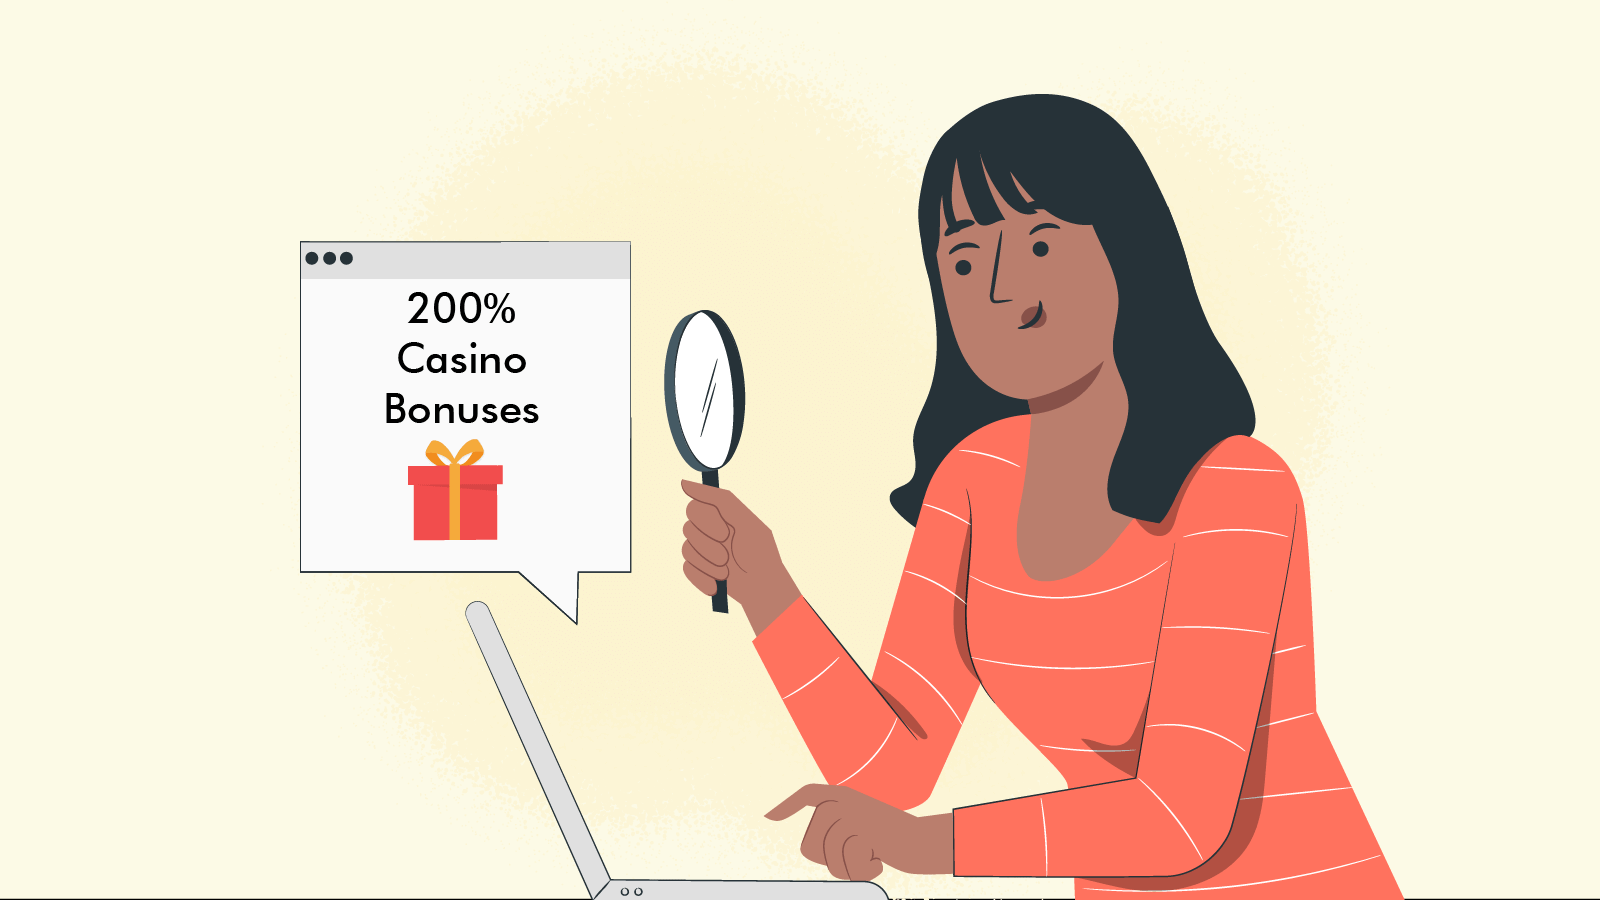 Where can you find 200% casino bonuses